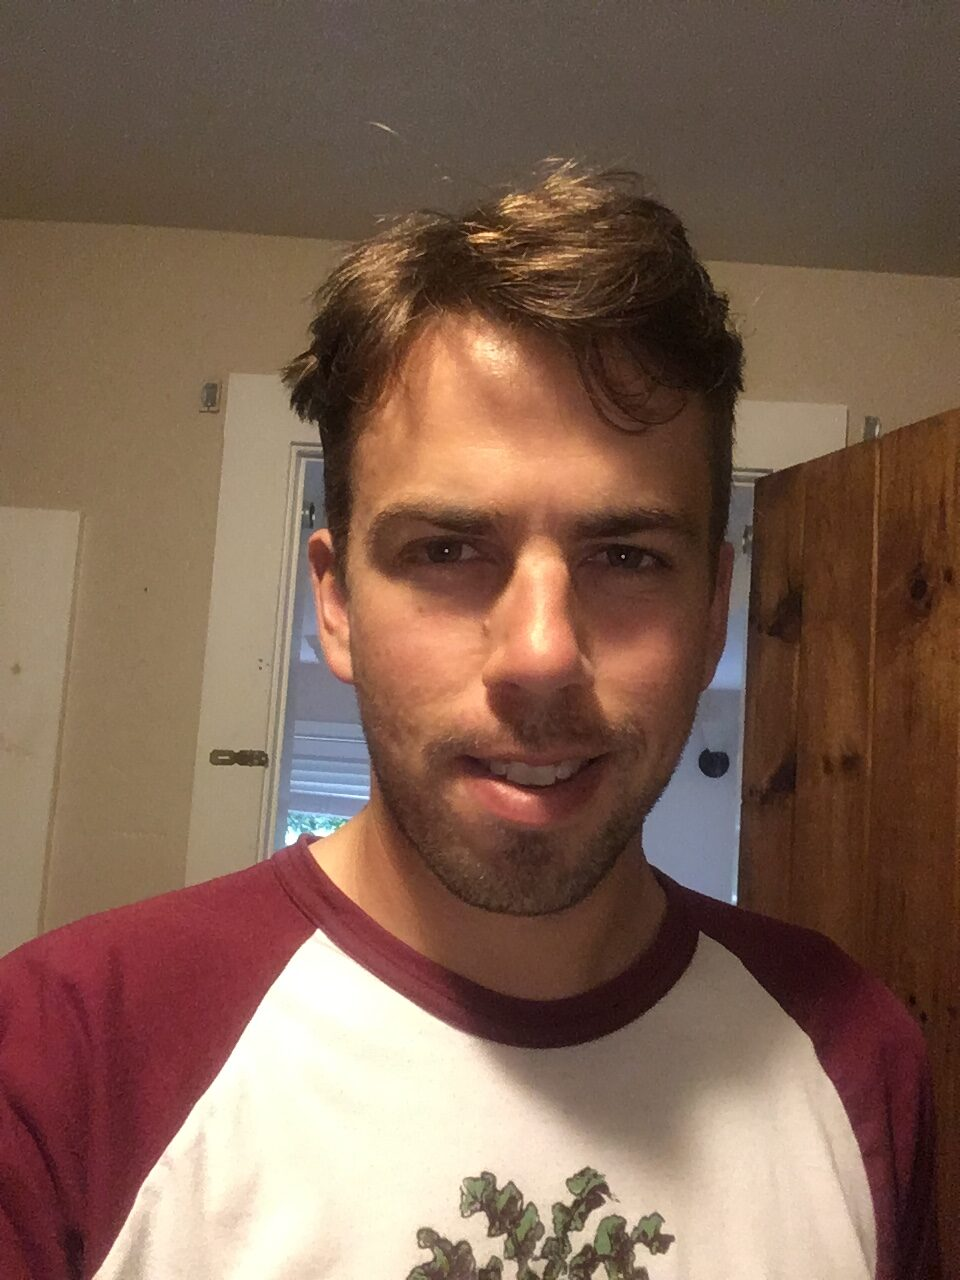 Ethan took a selfie. He's a good looking young man, smiling rather bashfully, wearing a white baseball Tshirt with burgundy raglan sleeves, and what looks like an illustration of thistles on it. His brown hair is newly cut, and he needs a shave.